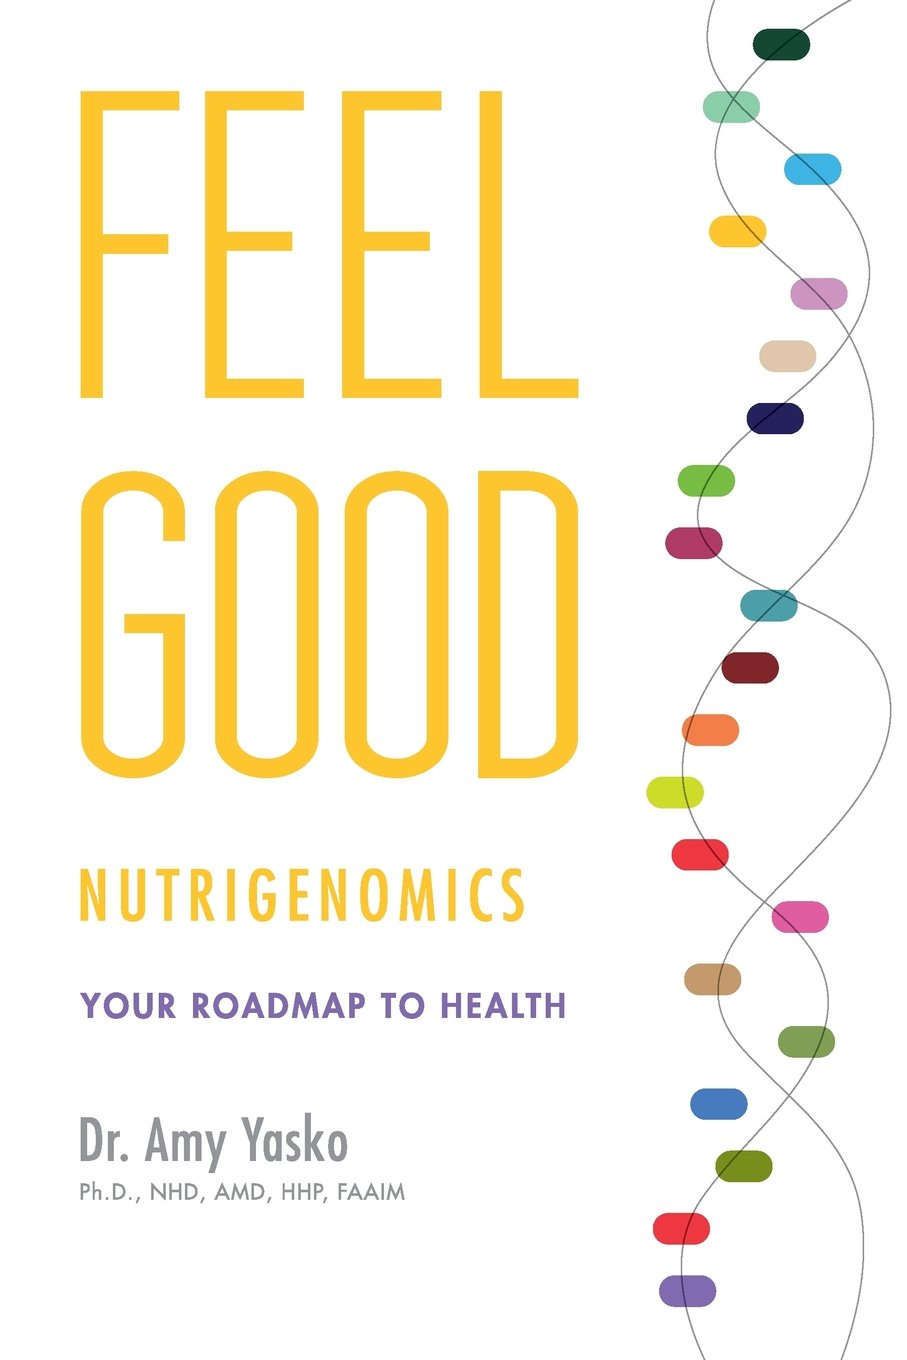 Feel Good Nutrigenomics Dr Amy Yasko 9780991569106 Books Here Are Select Methylation Diagrams References In Conferences